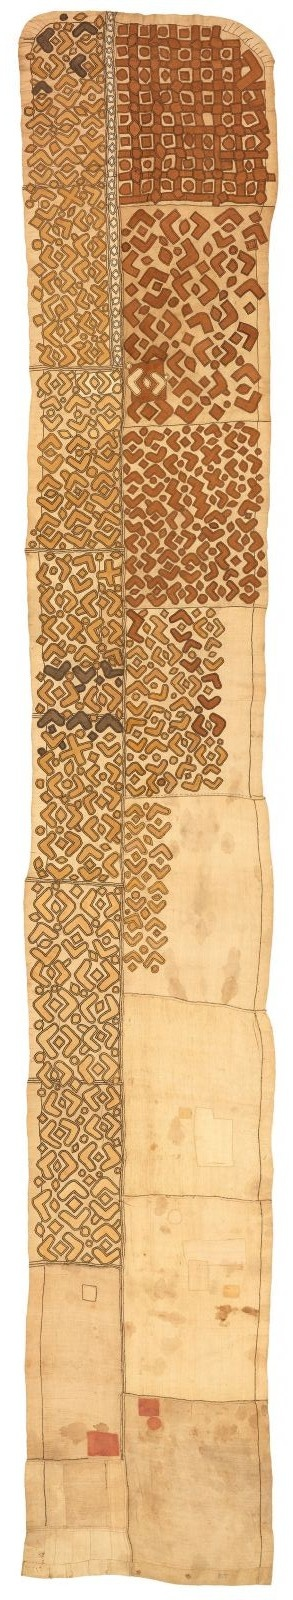 Africa | Kuba Woman's Skirt. Bushoong People, DR Congo | Early 20th century | Raffia palm fiber, appliqué and embroidery